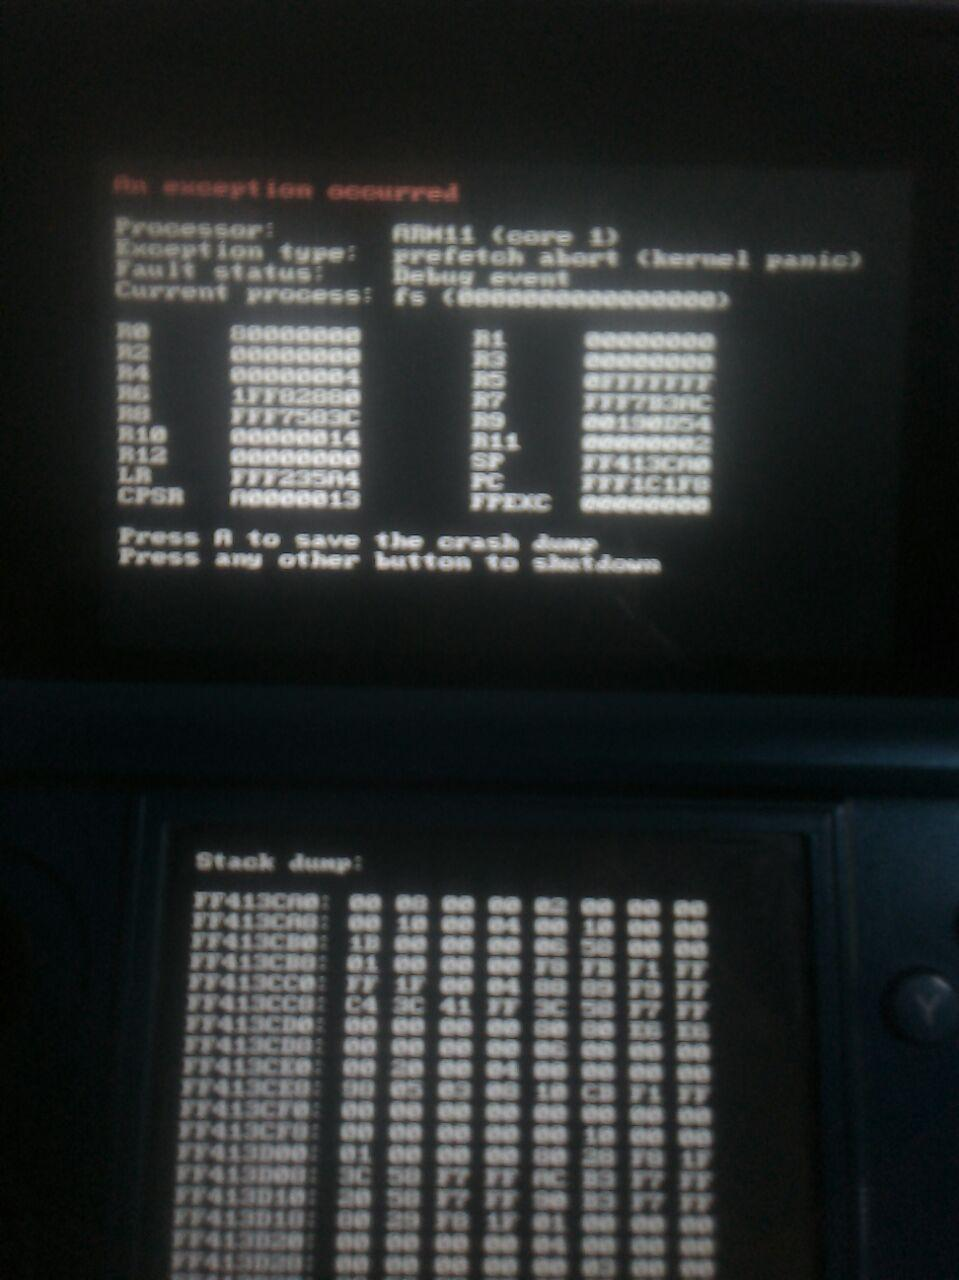 Discontinued] TWLoader - CTR-mode NDS app | Page 443